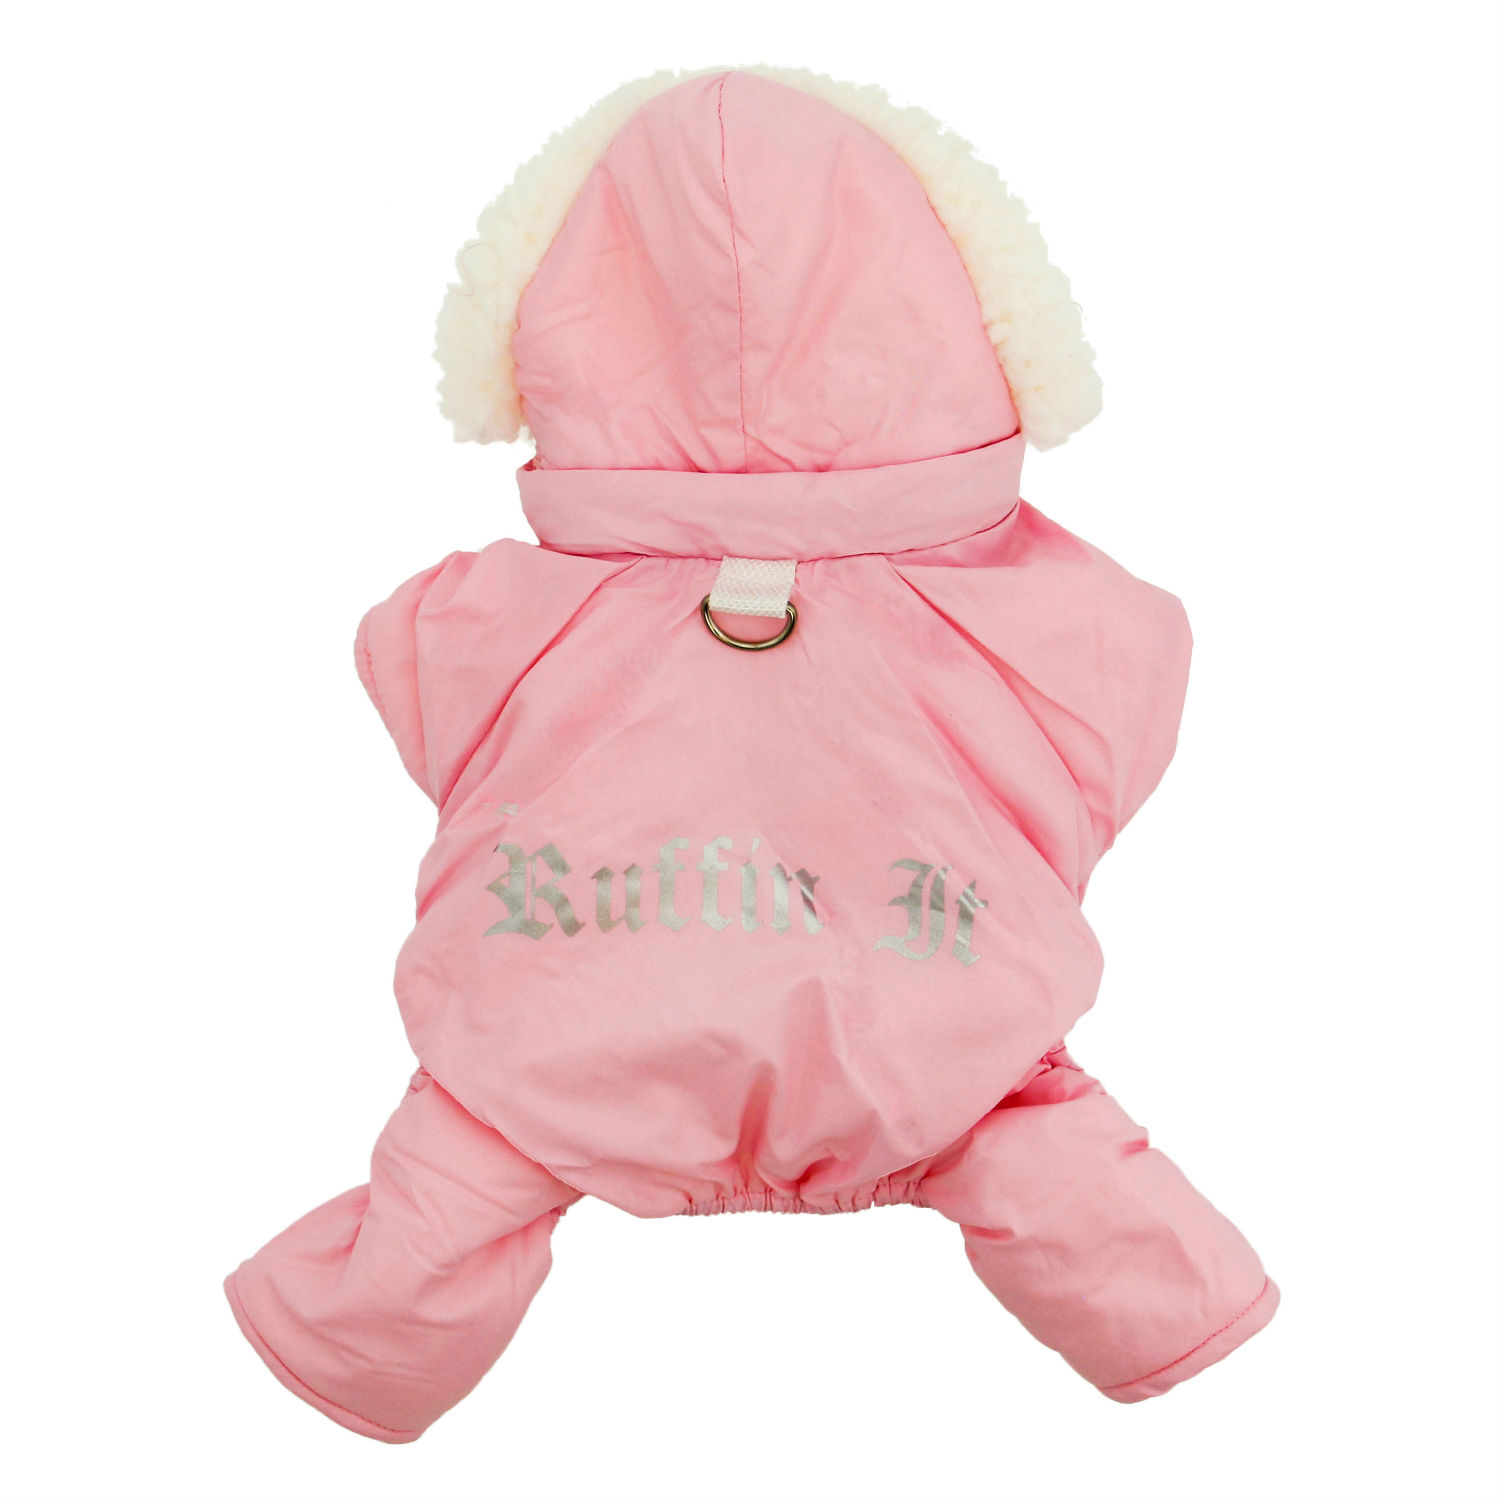 Ruffin It Snowsuit by Doggie Design - Pink